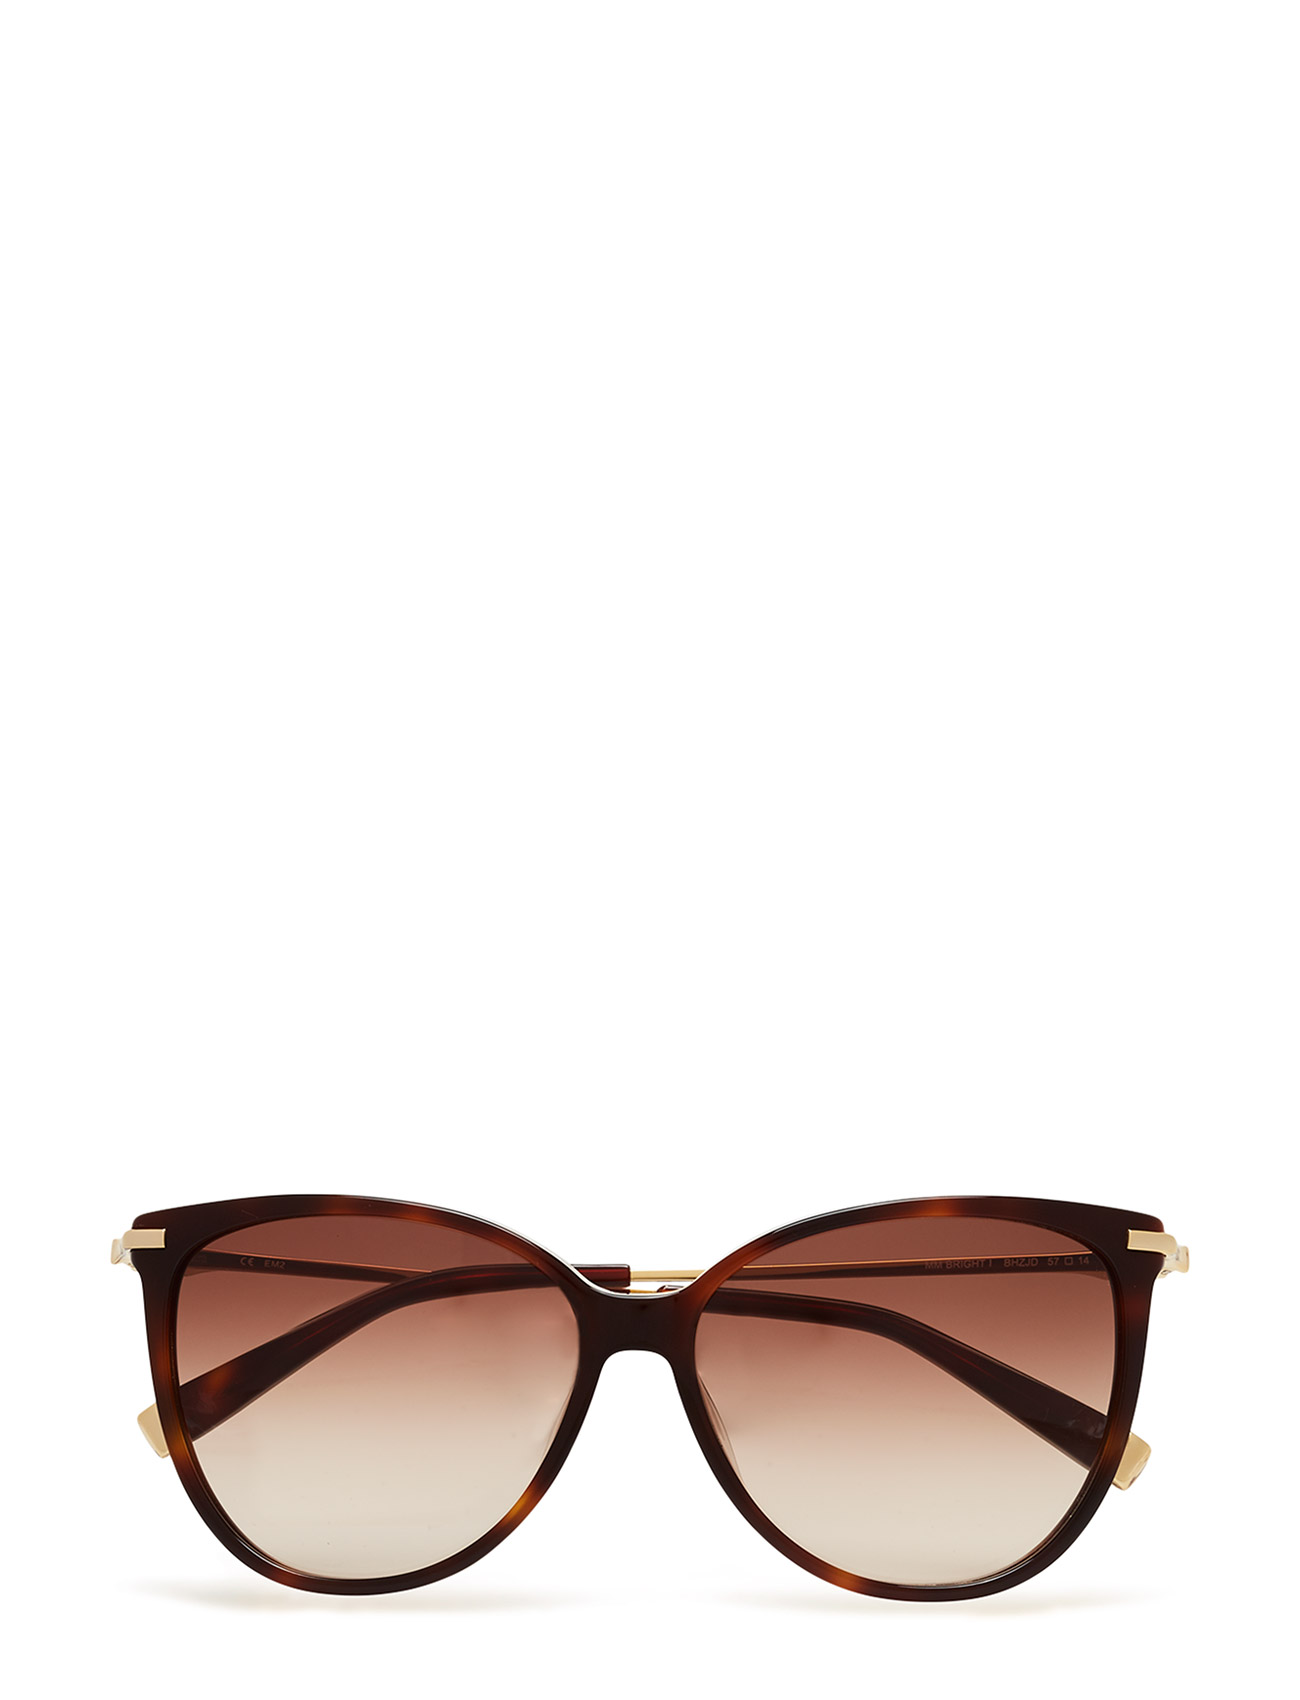 Mm Bright I MAXMARA Sunglasses Solbriller til Damer i